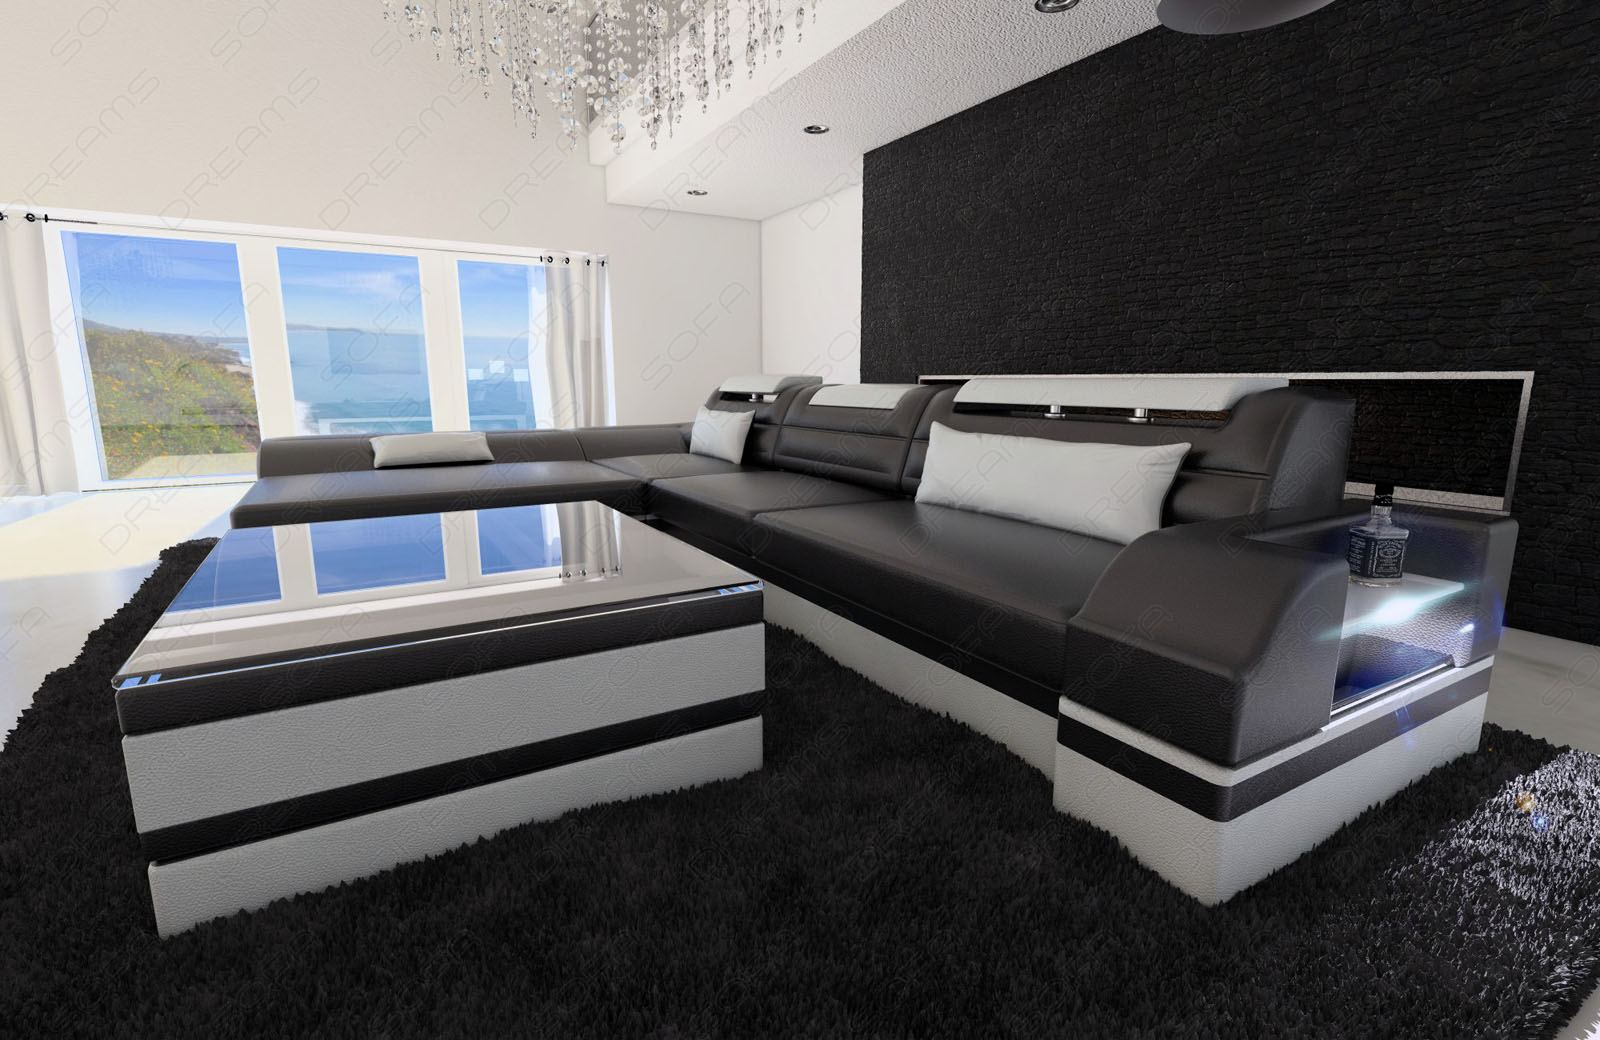 echtledersofa monza l form luxus eckcouch schwarz weiss ecksofa mit led licht ebay. Black Bedroom Furniture Sets. Home Design Ideas